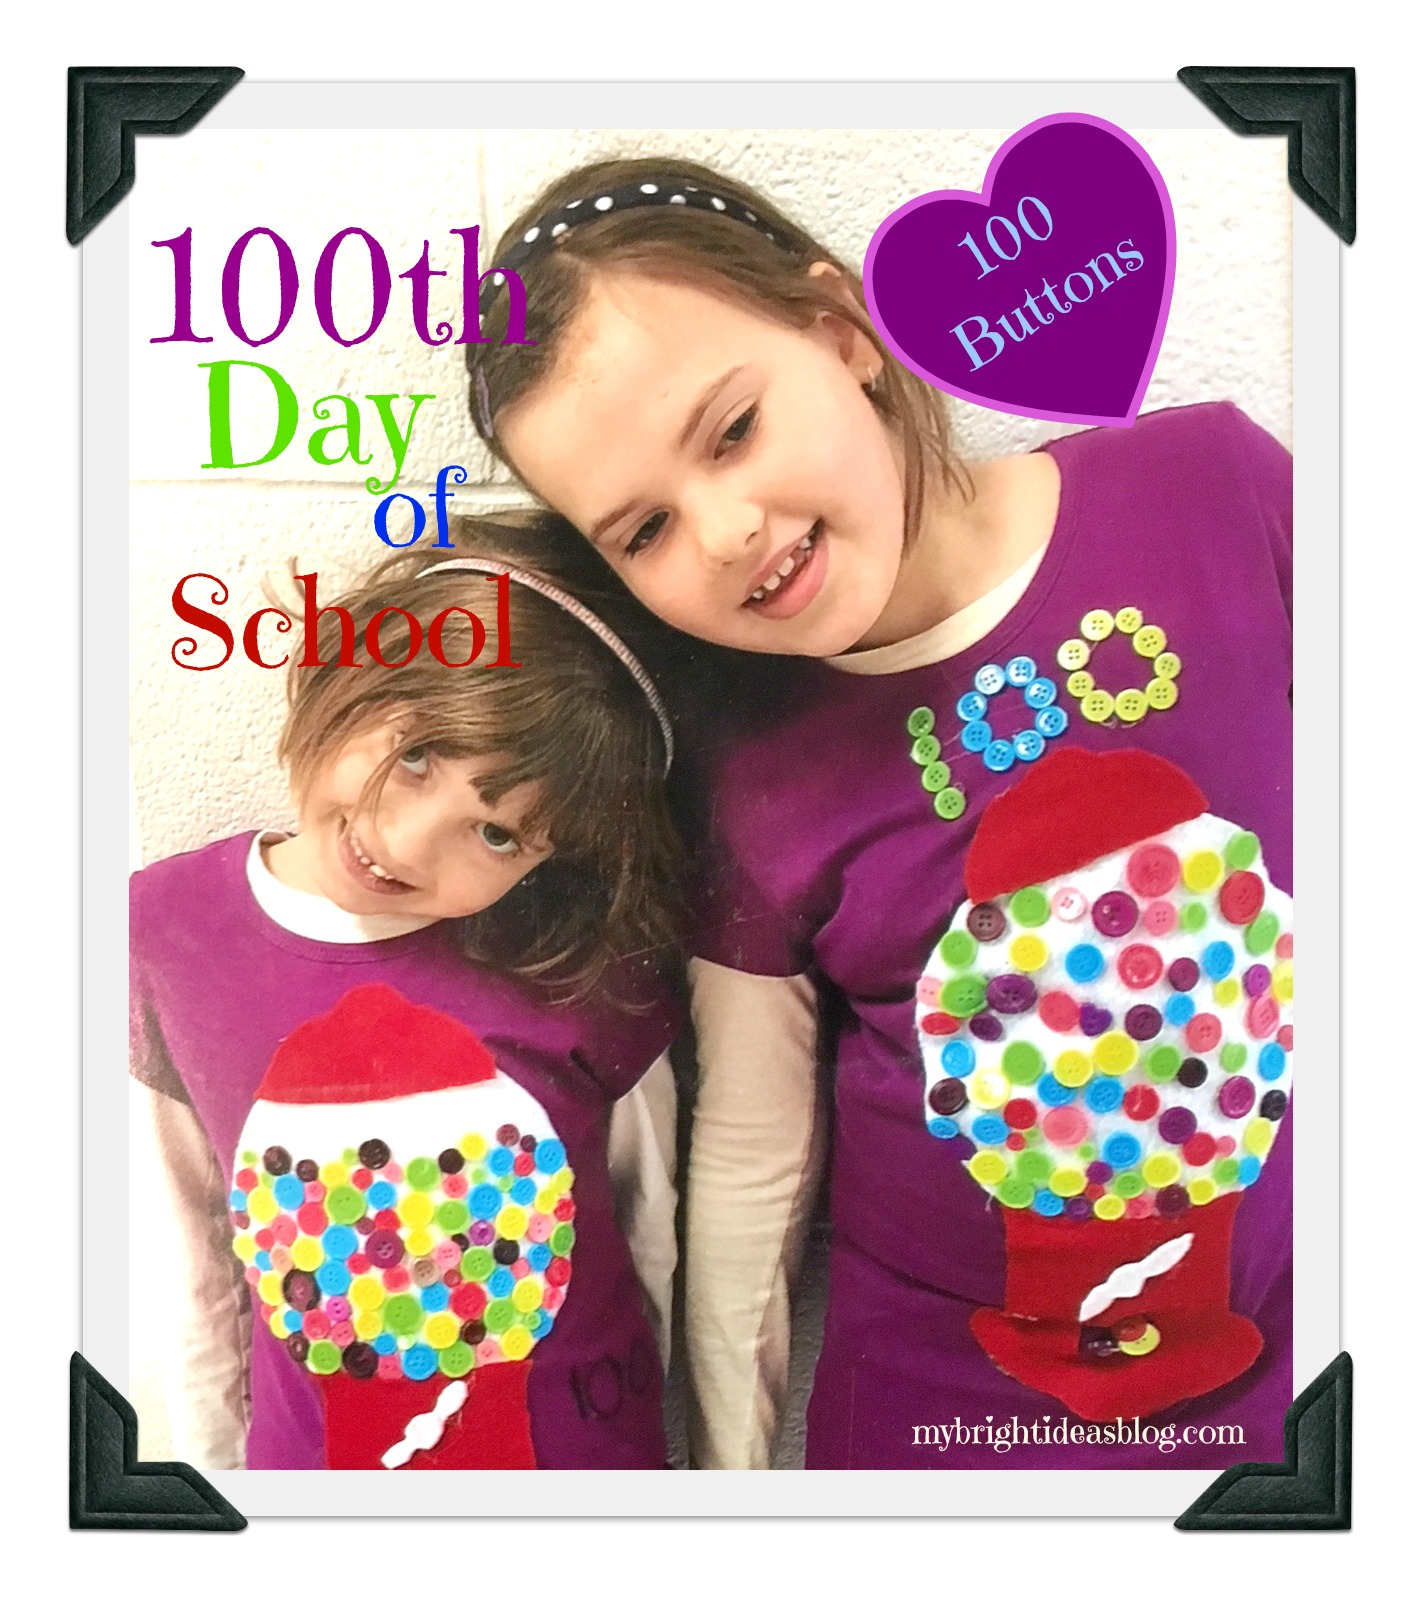 100 Buttons on a Tshirt with Felt Gumball Machine-To Celebrate Math and Counting and passing 100 days of school, Teachers often give an assignment to bring 100 of something from home.